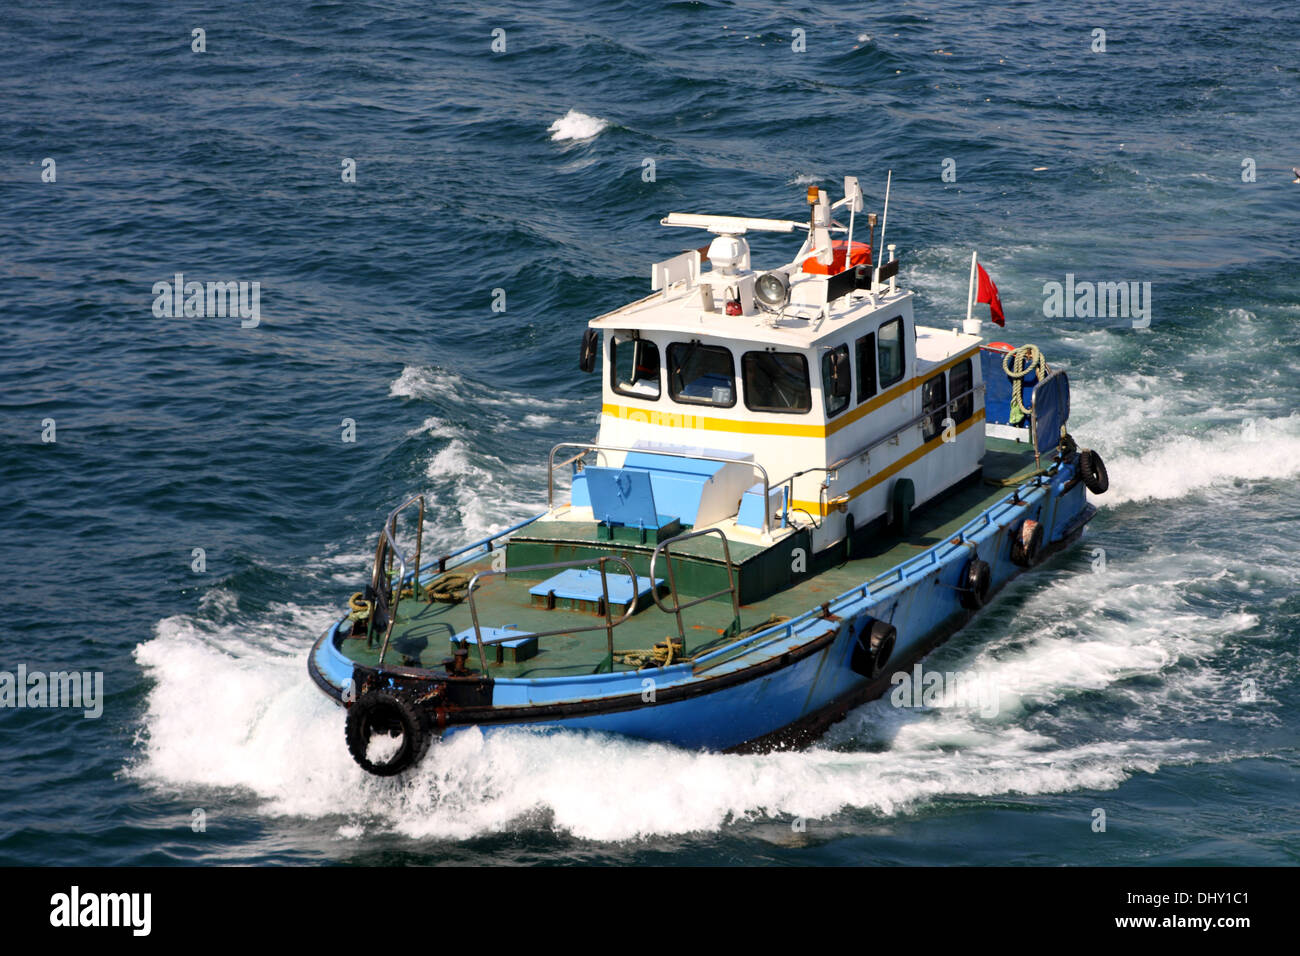 Tugboat on the waters of the Golden Horn, Istanbul, Republic of Turkey Stock Photo